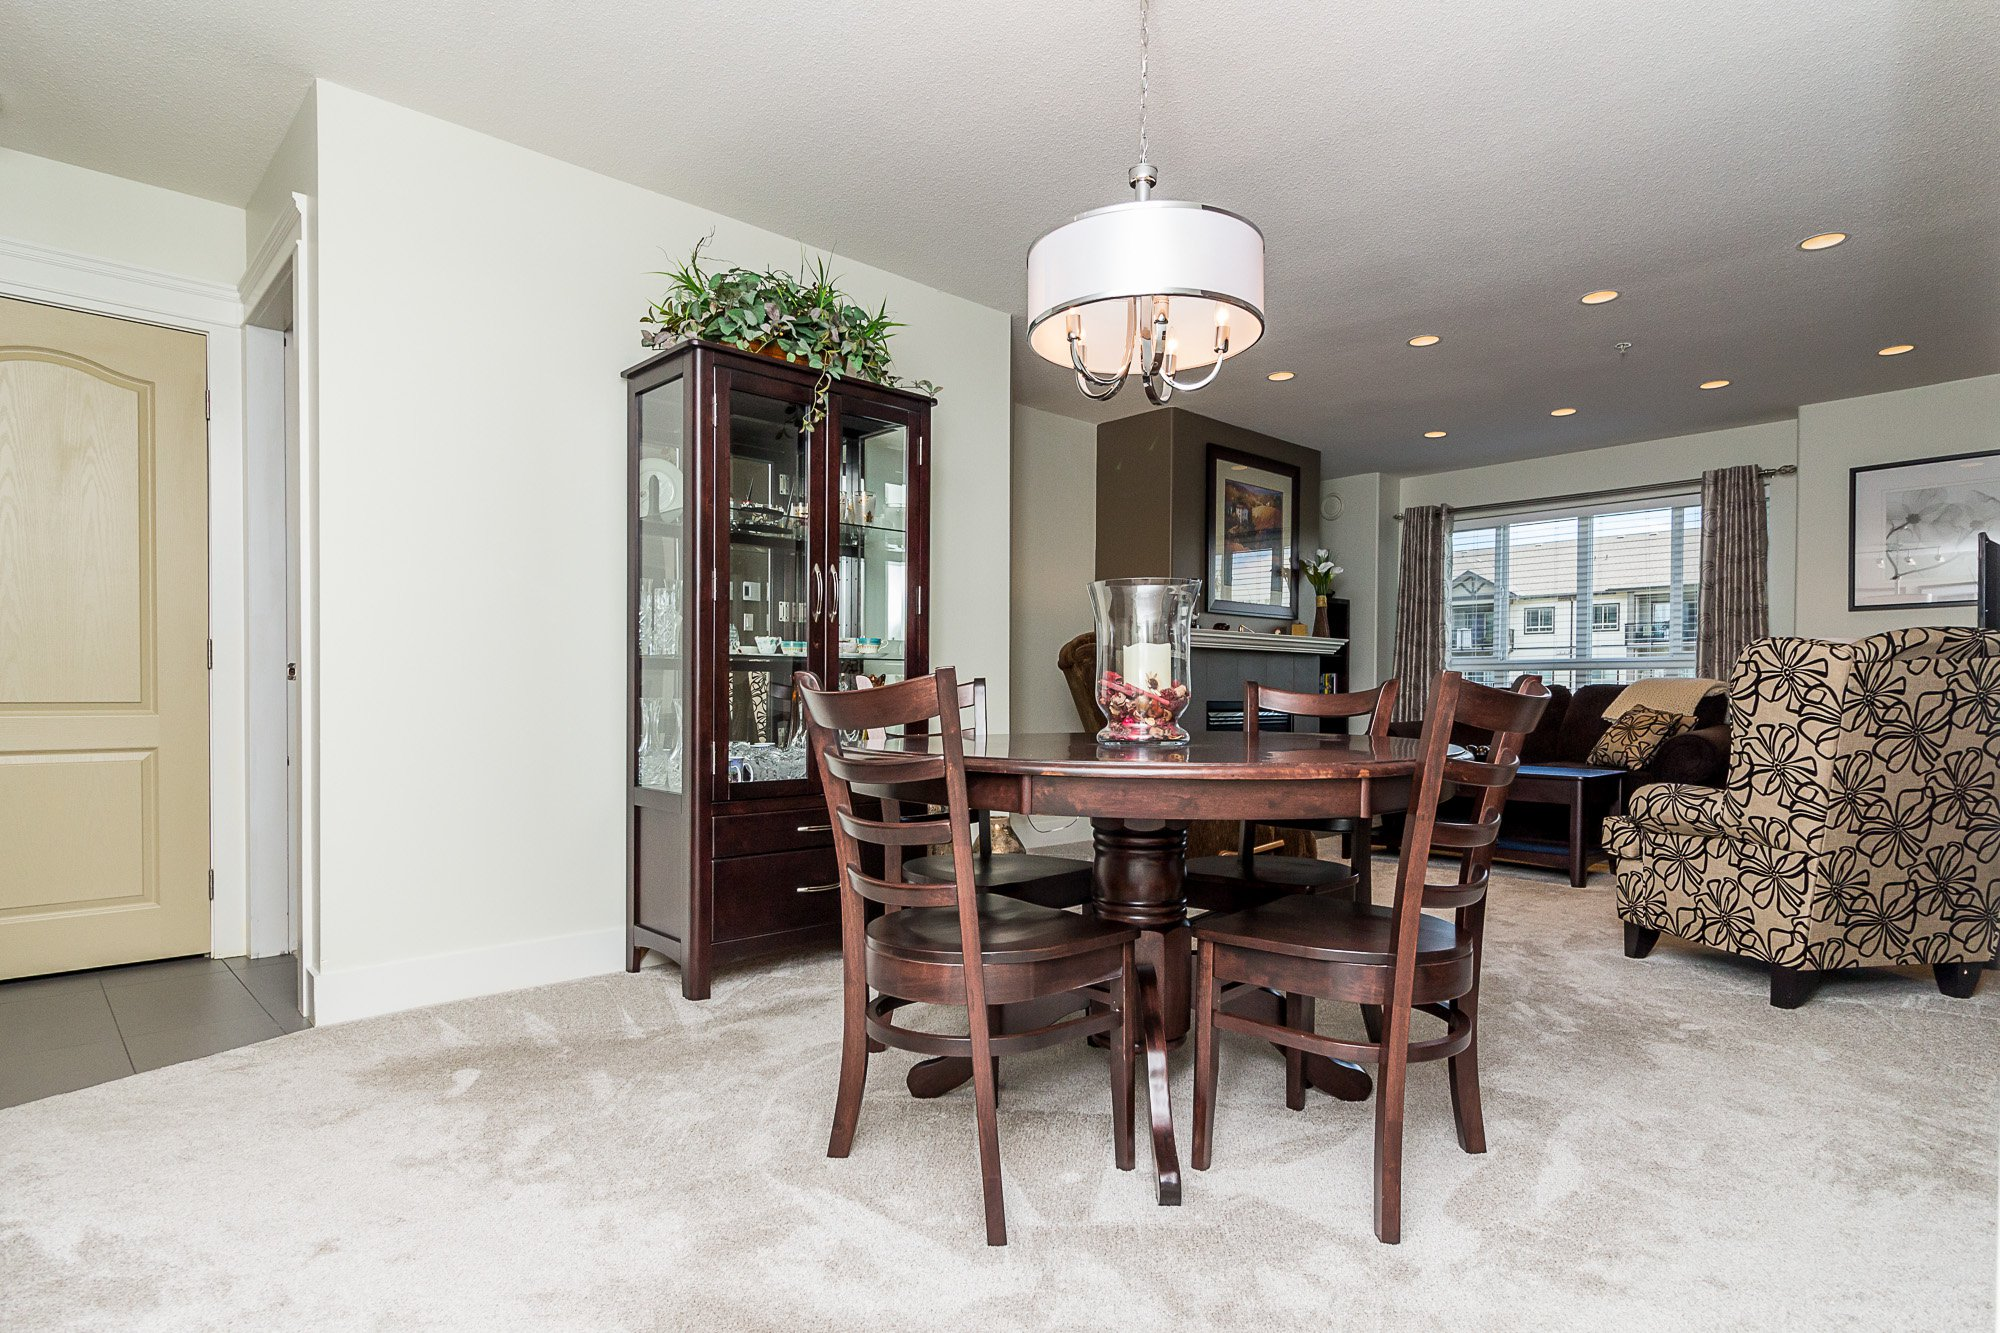 """Photo 7: Photos: 412 22022 49 Avenue in Langley: Murrayville Condo for sale in """"Murray Green"""" : MLS®# R2266359"""